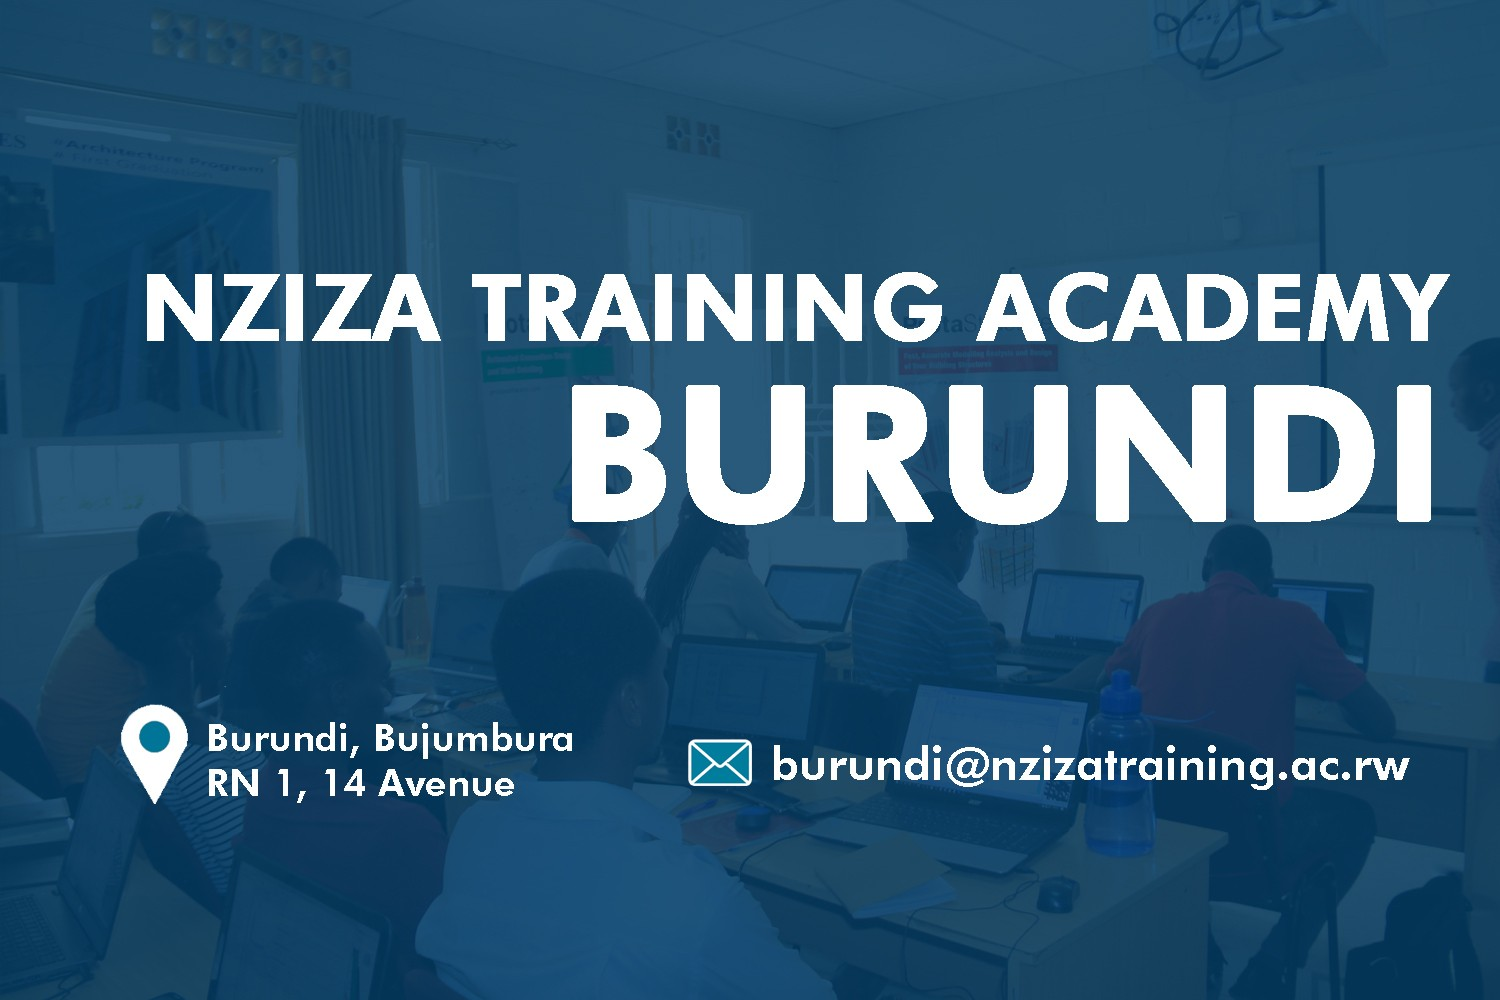 Our operations in Burundi.